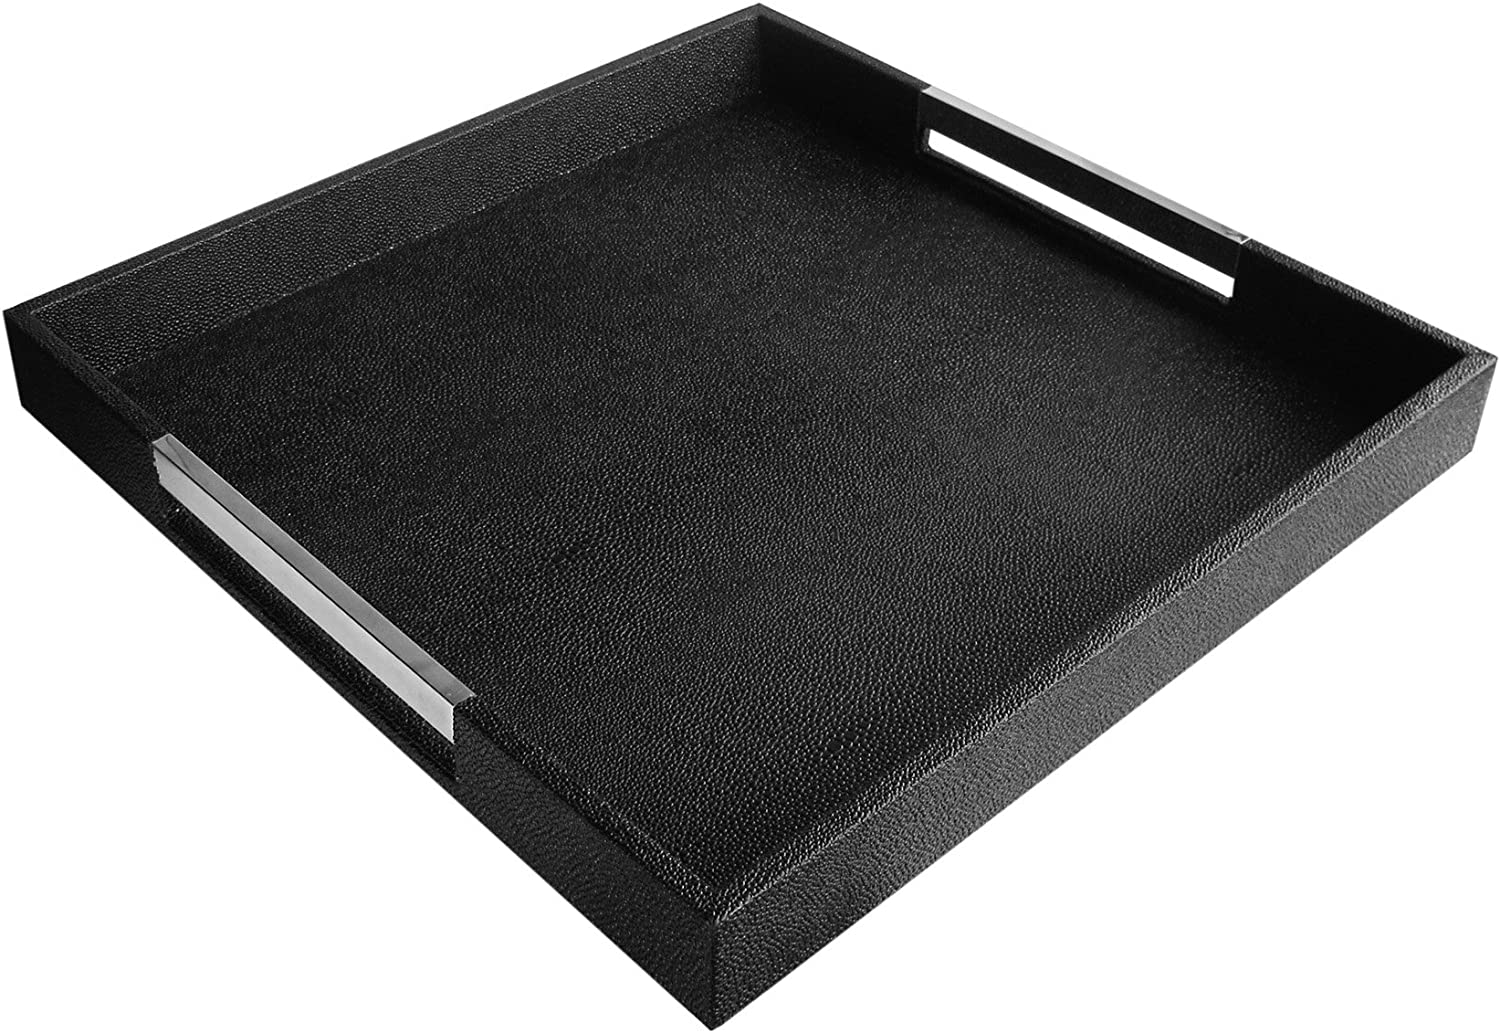 Outlet sale feature American Atelier Square Serving Silver Tray 18x18 Black Portland Mall